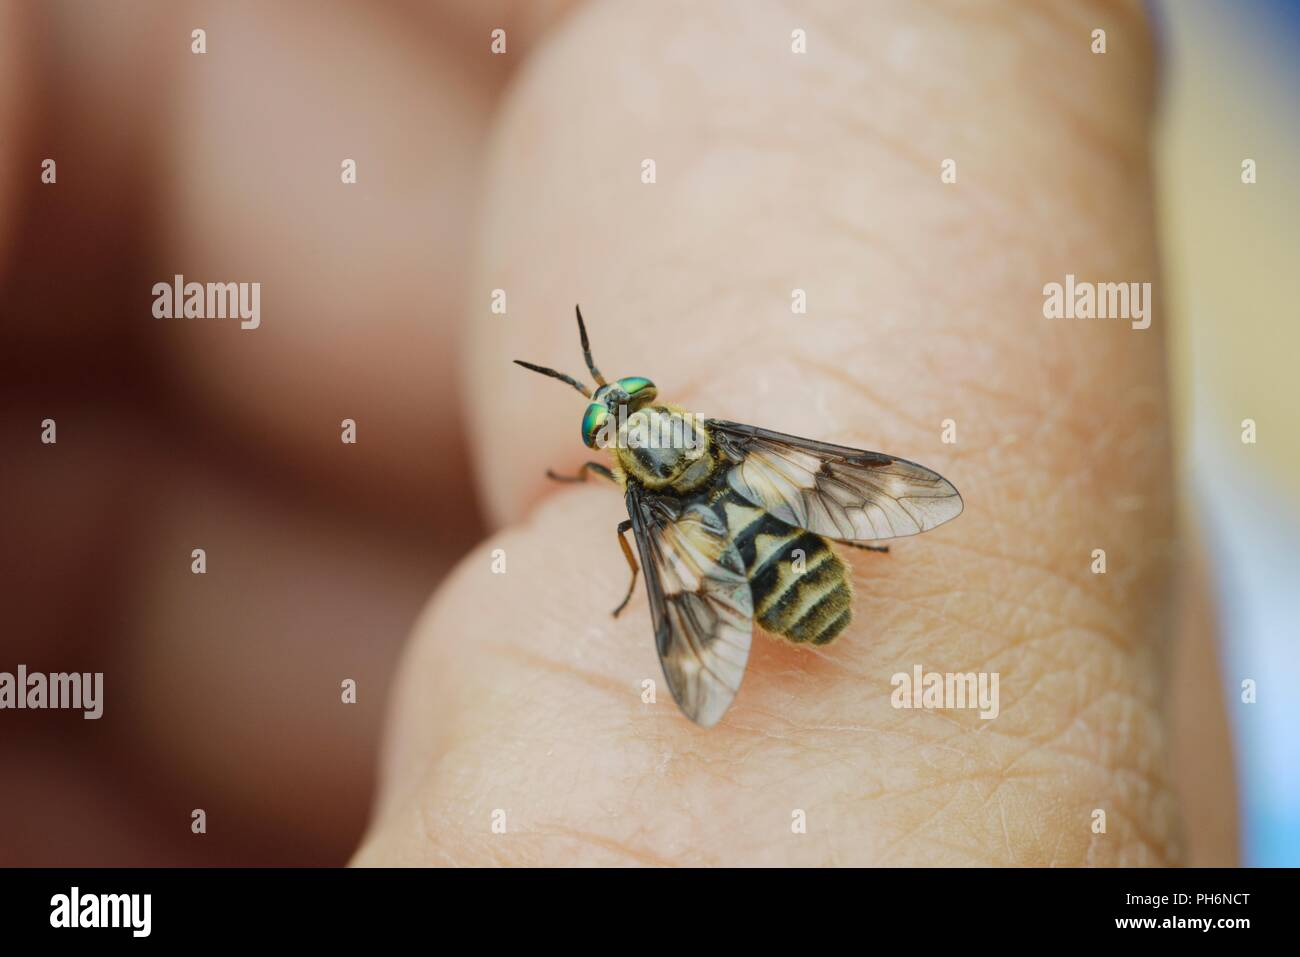 Biting Flies Stock Photos & Biting Flies Stock Images - Alamy